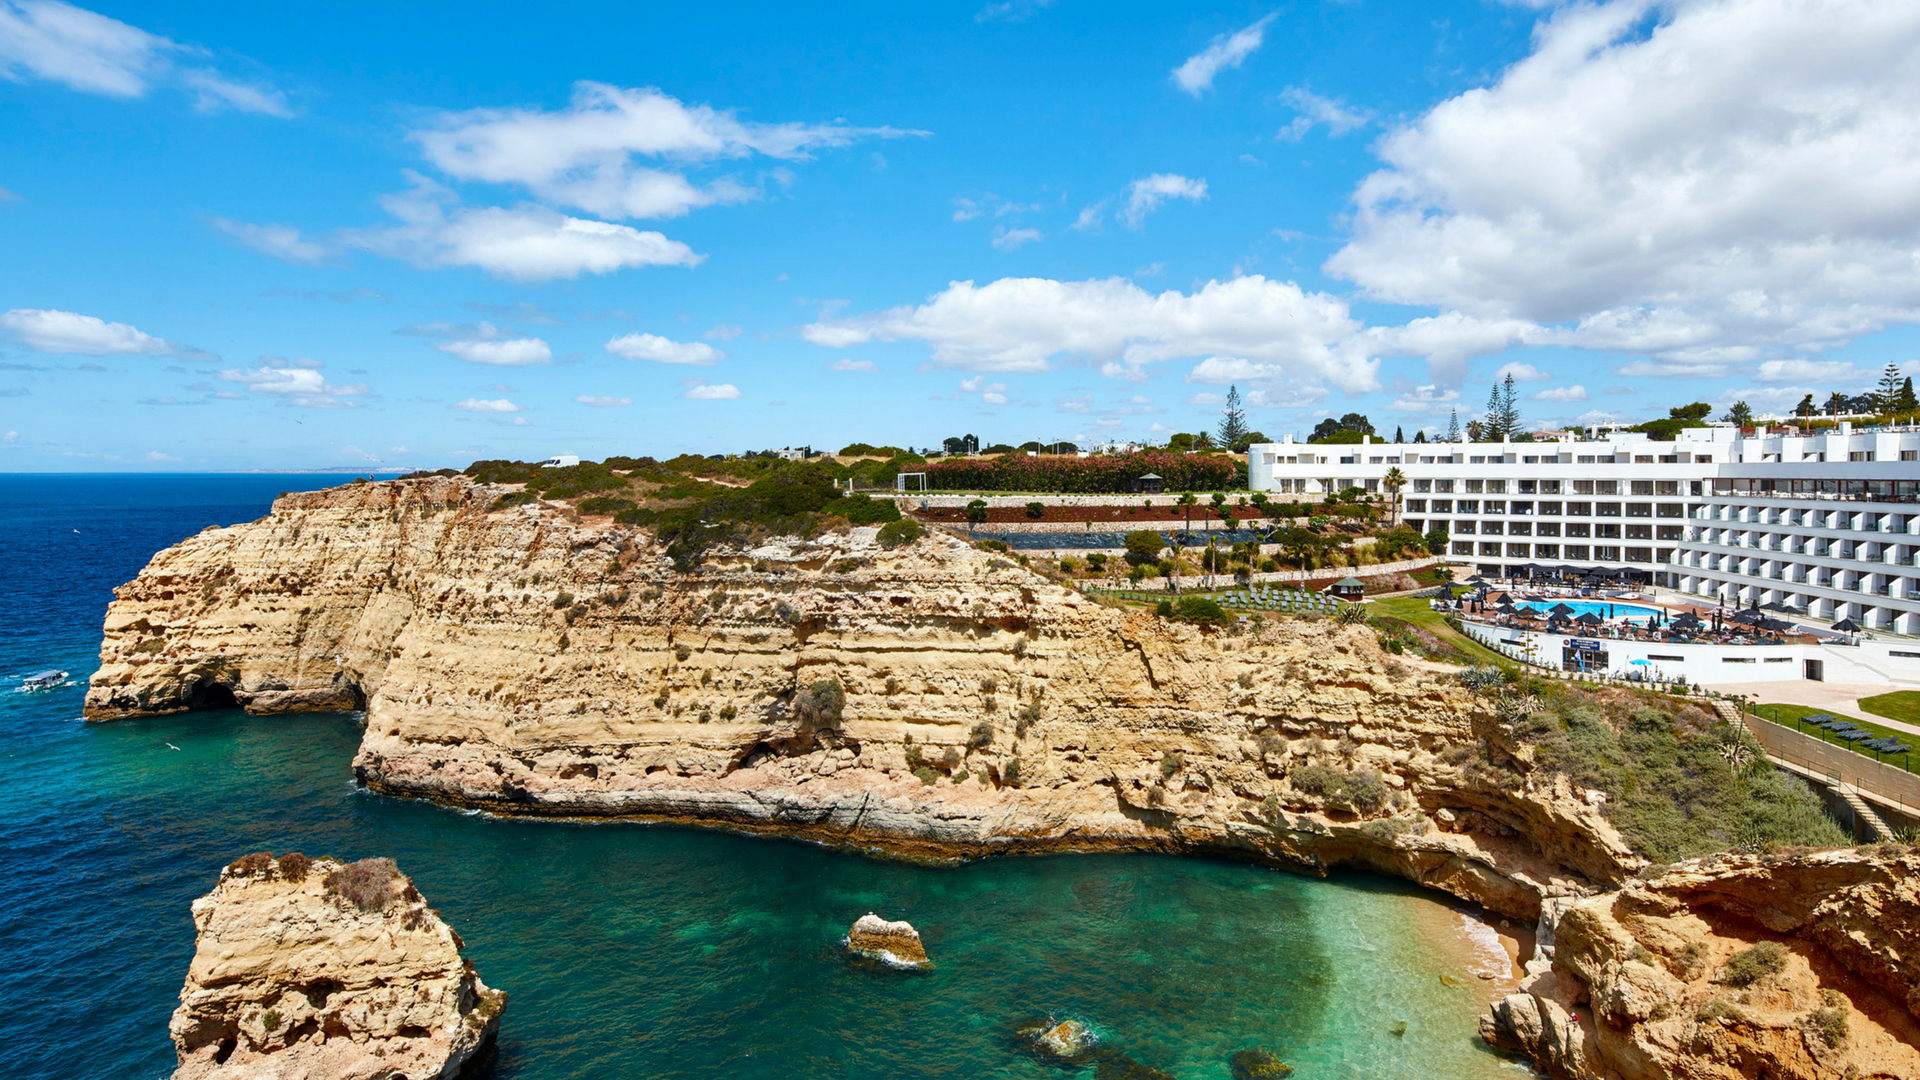 Hotel Tivoli Carvoeiro Algarve Booking Tivoli Carvoeiro Algarve Resort Gha